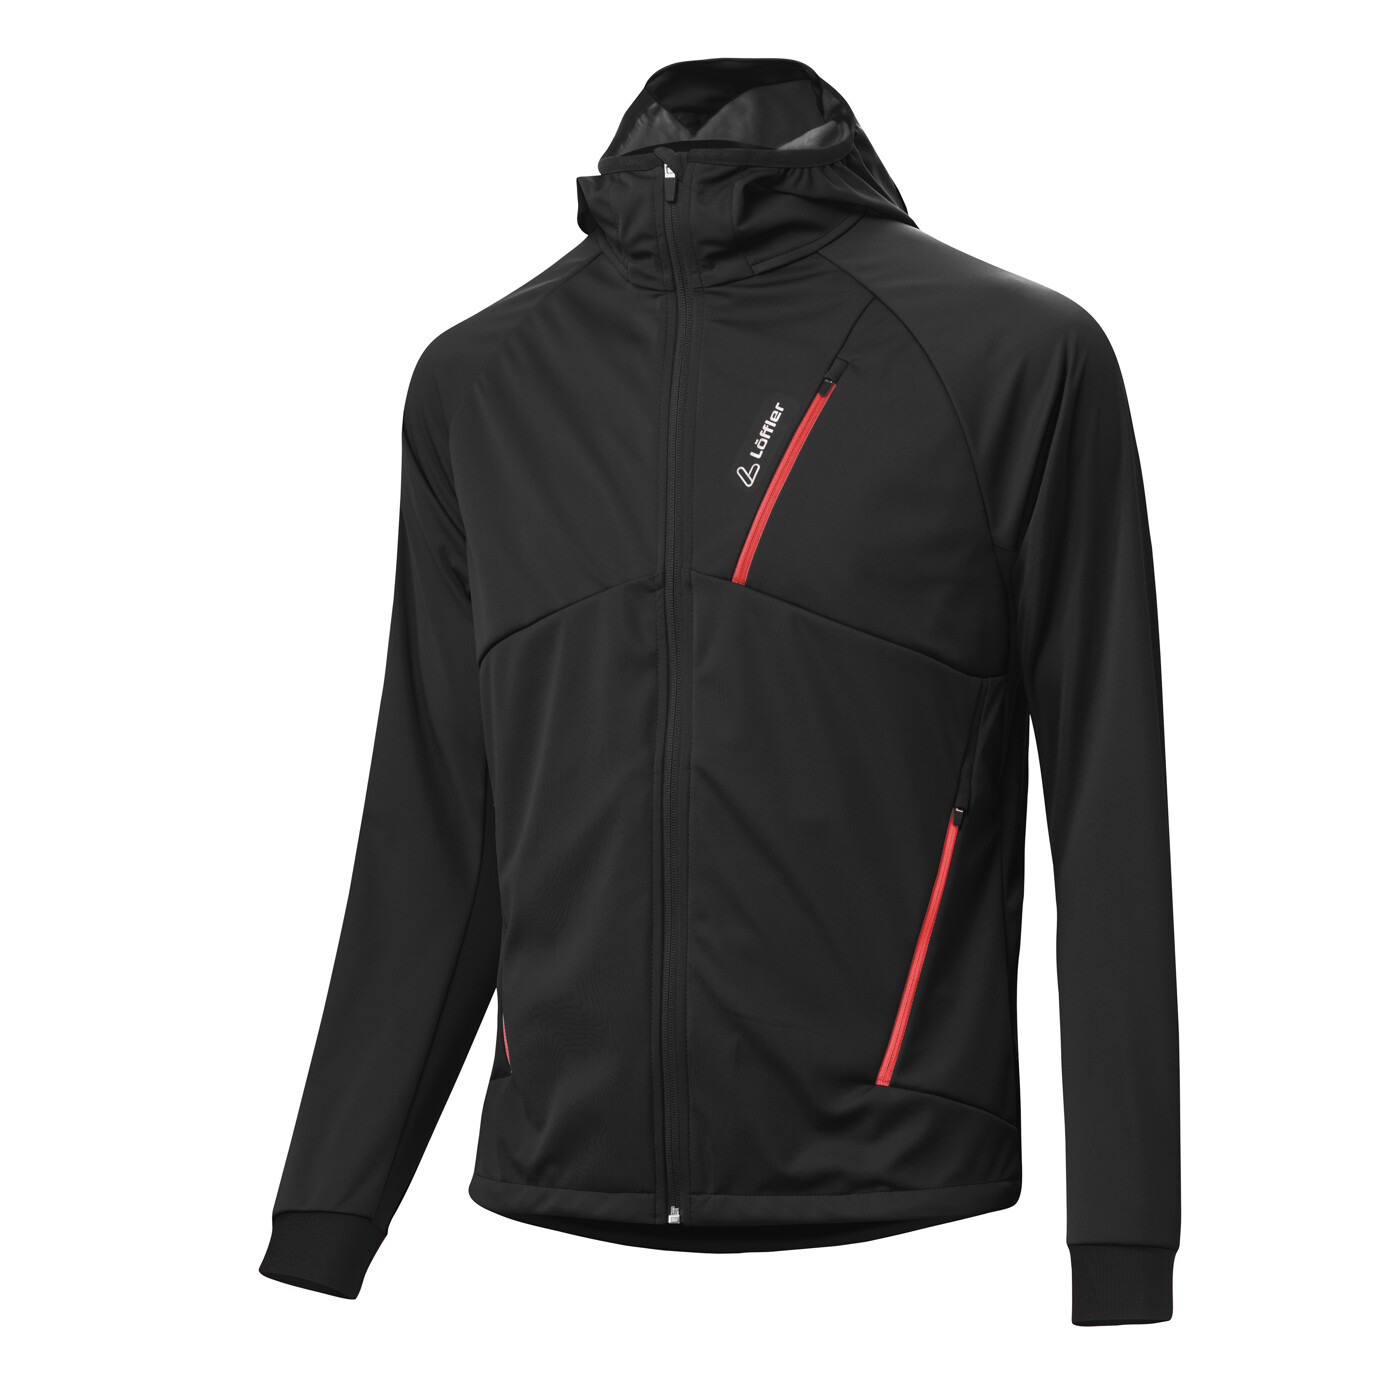 LÖFFLER M HOODED JACKET WORLDCUP WS LI - Herren